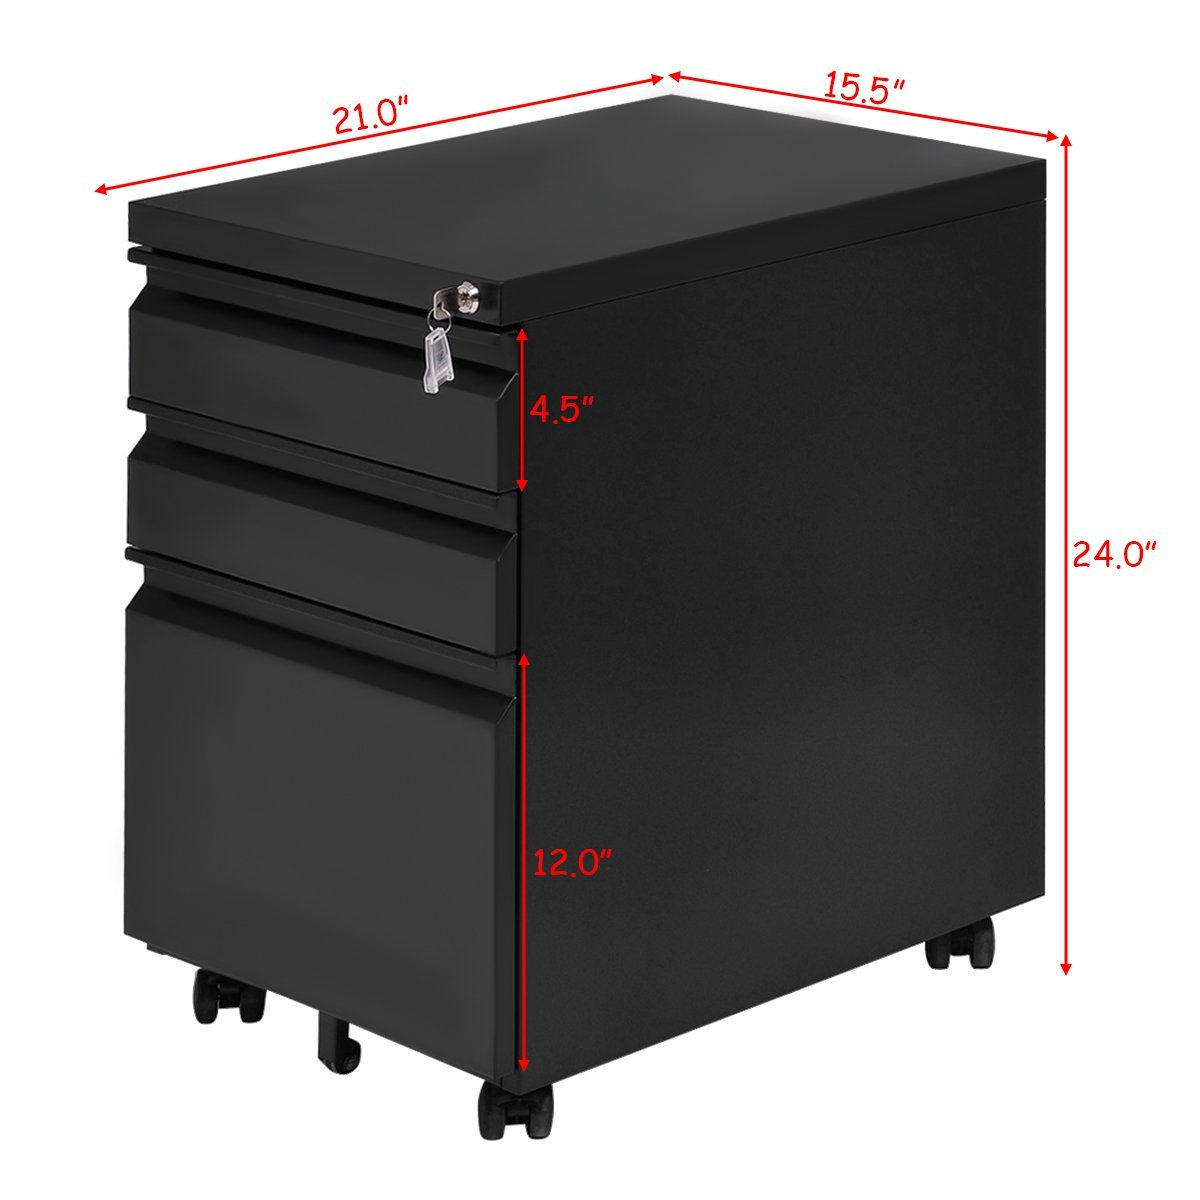 Giantex Rolling Mobile File W/3 Lockable Drawers and Pedestal for Office Study Room Home Steel Storage Cabinet by Giantex (Image #8)